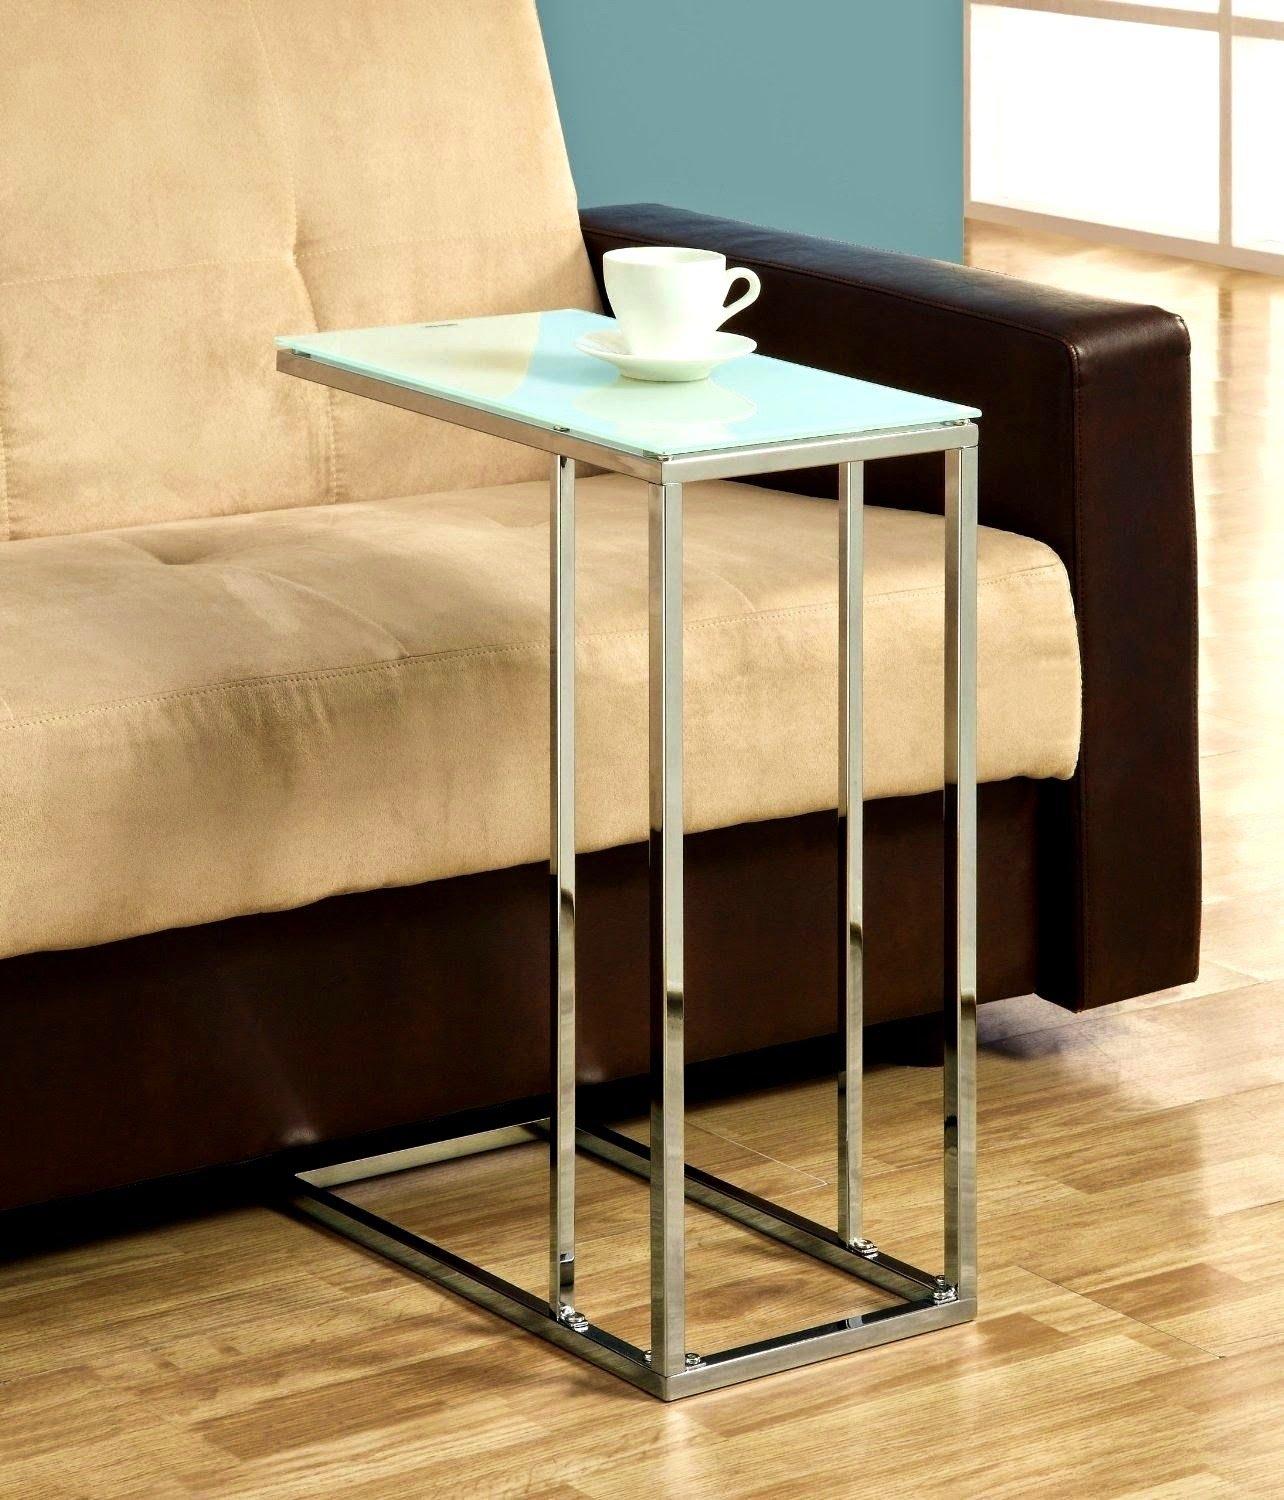 Sofa Table Design: Slide Under Sofa Tray Table Affordable .